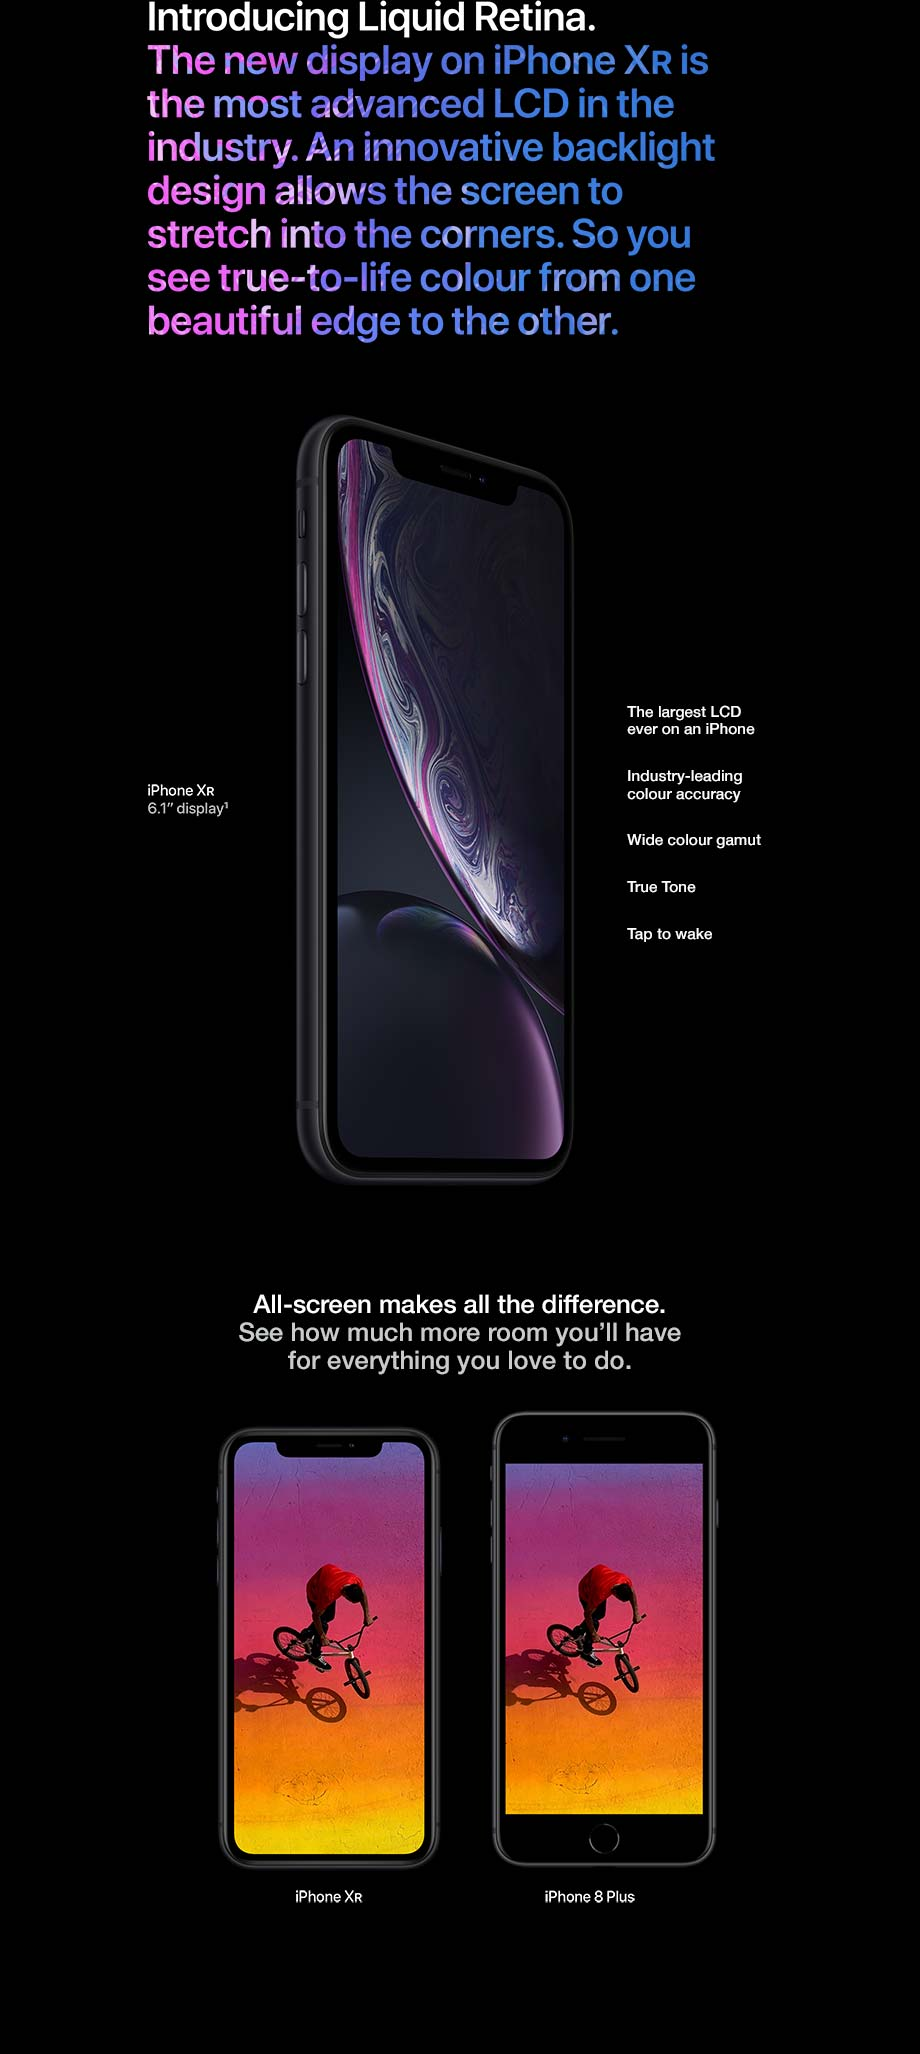 Display - Introducing Liquid Retina